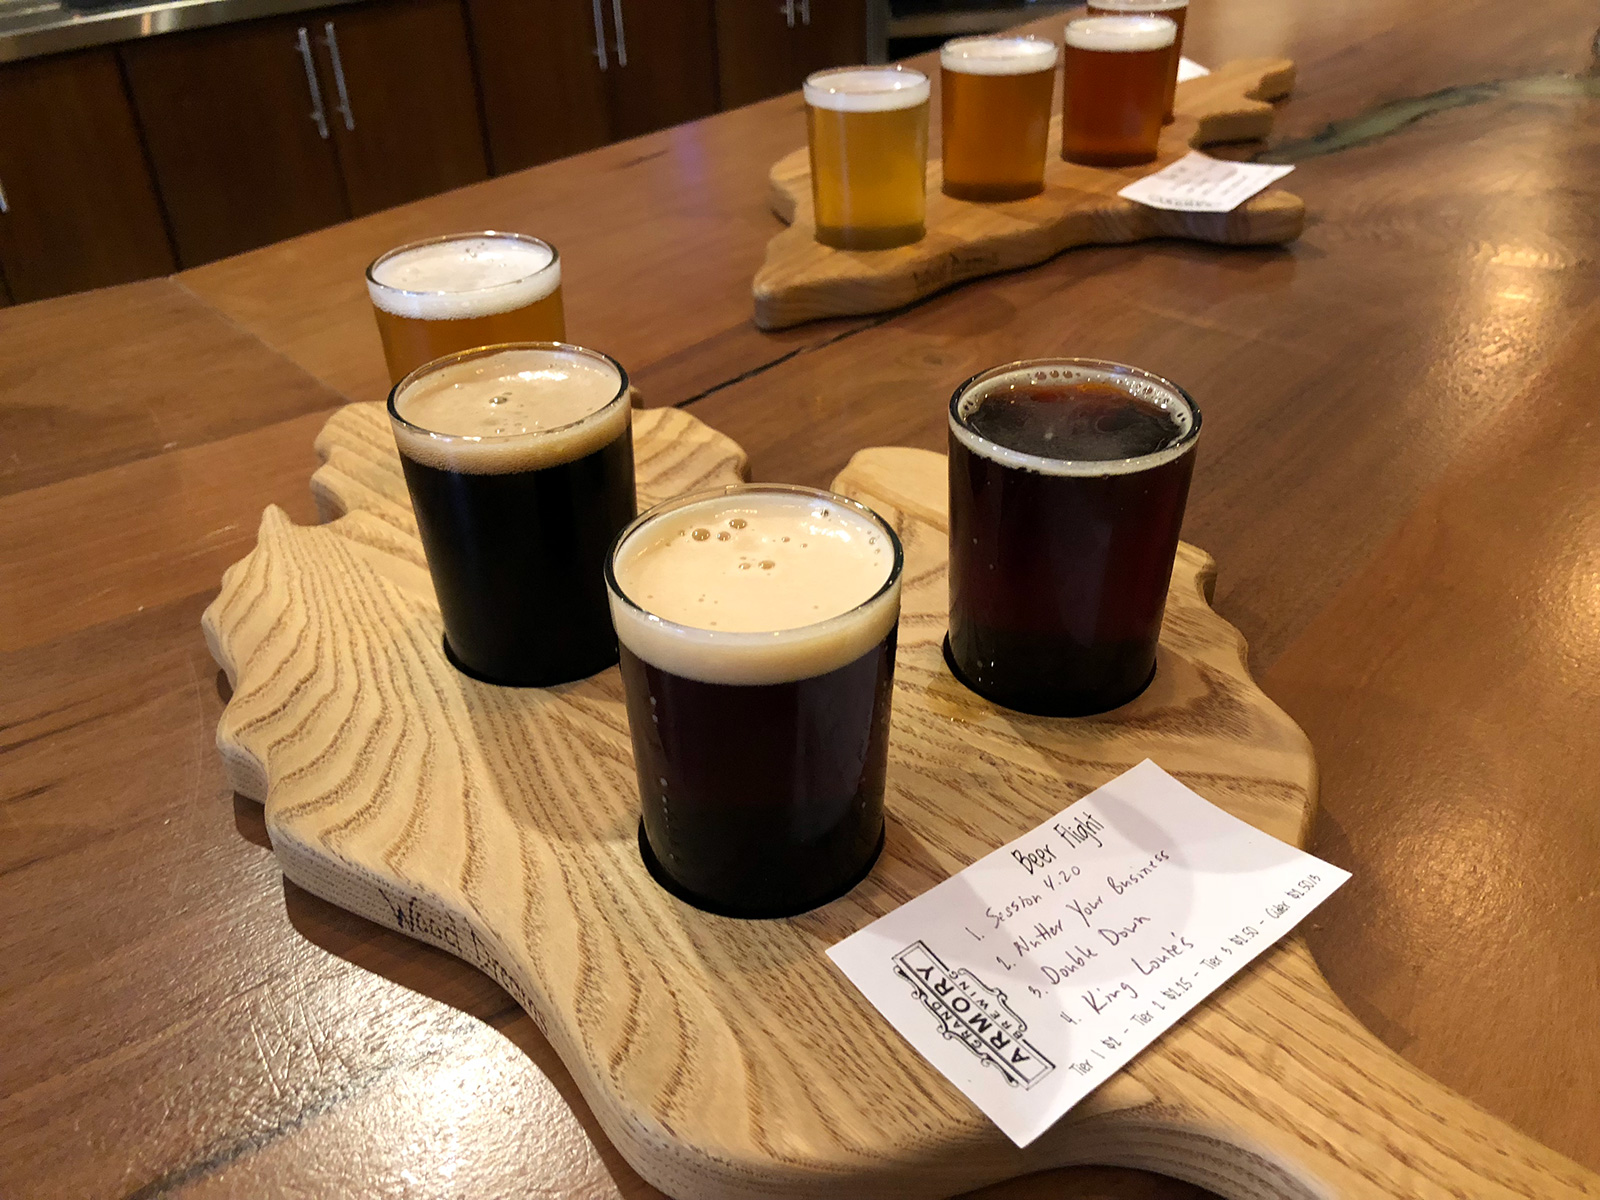 Grand Armory Brewing Co. in Grand Haven, Michigan by Hopsmash / Jets Like Taxis